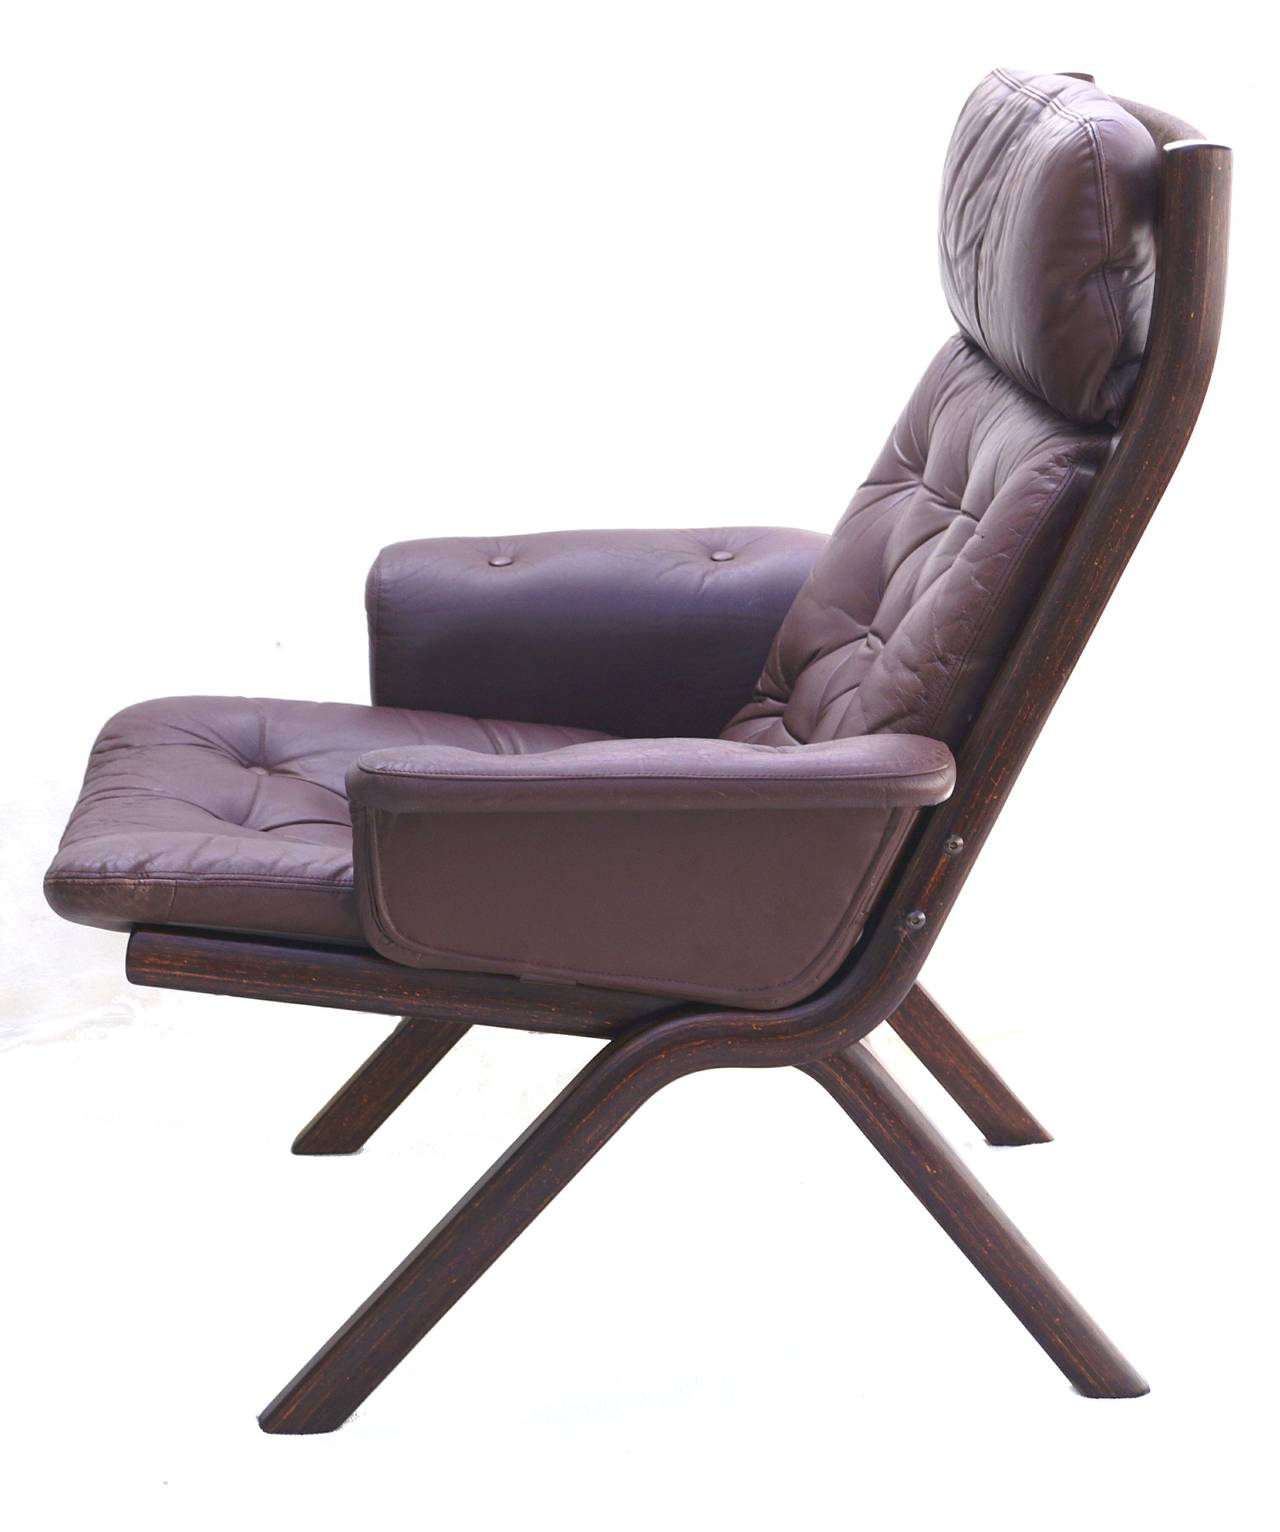 leather sling chairs folding chair pepperfry danish modern sculptural lounge and